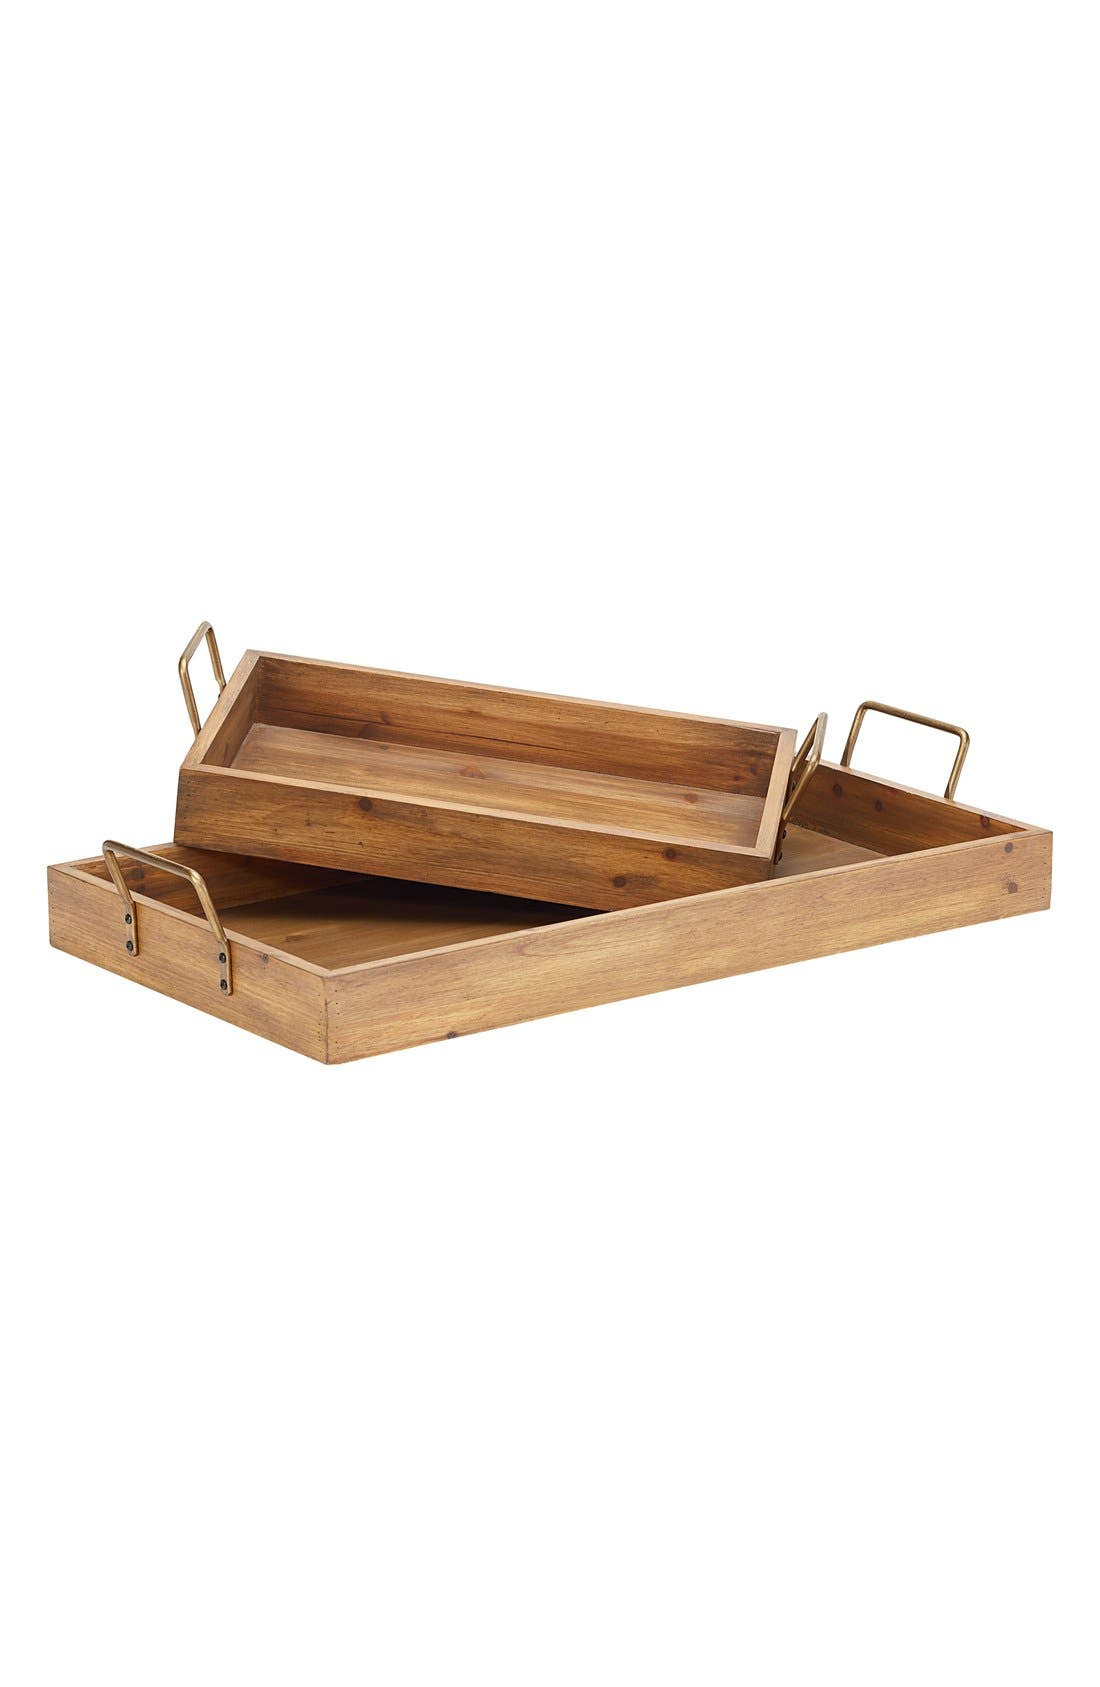 Main Image - Magnolia Home Wooden Breakfast Trays (Set of 2)